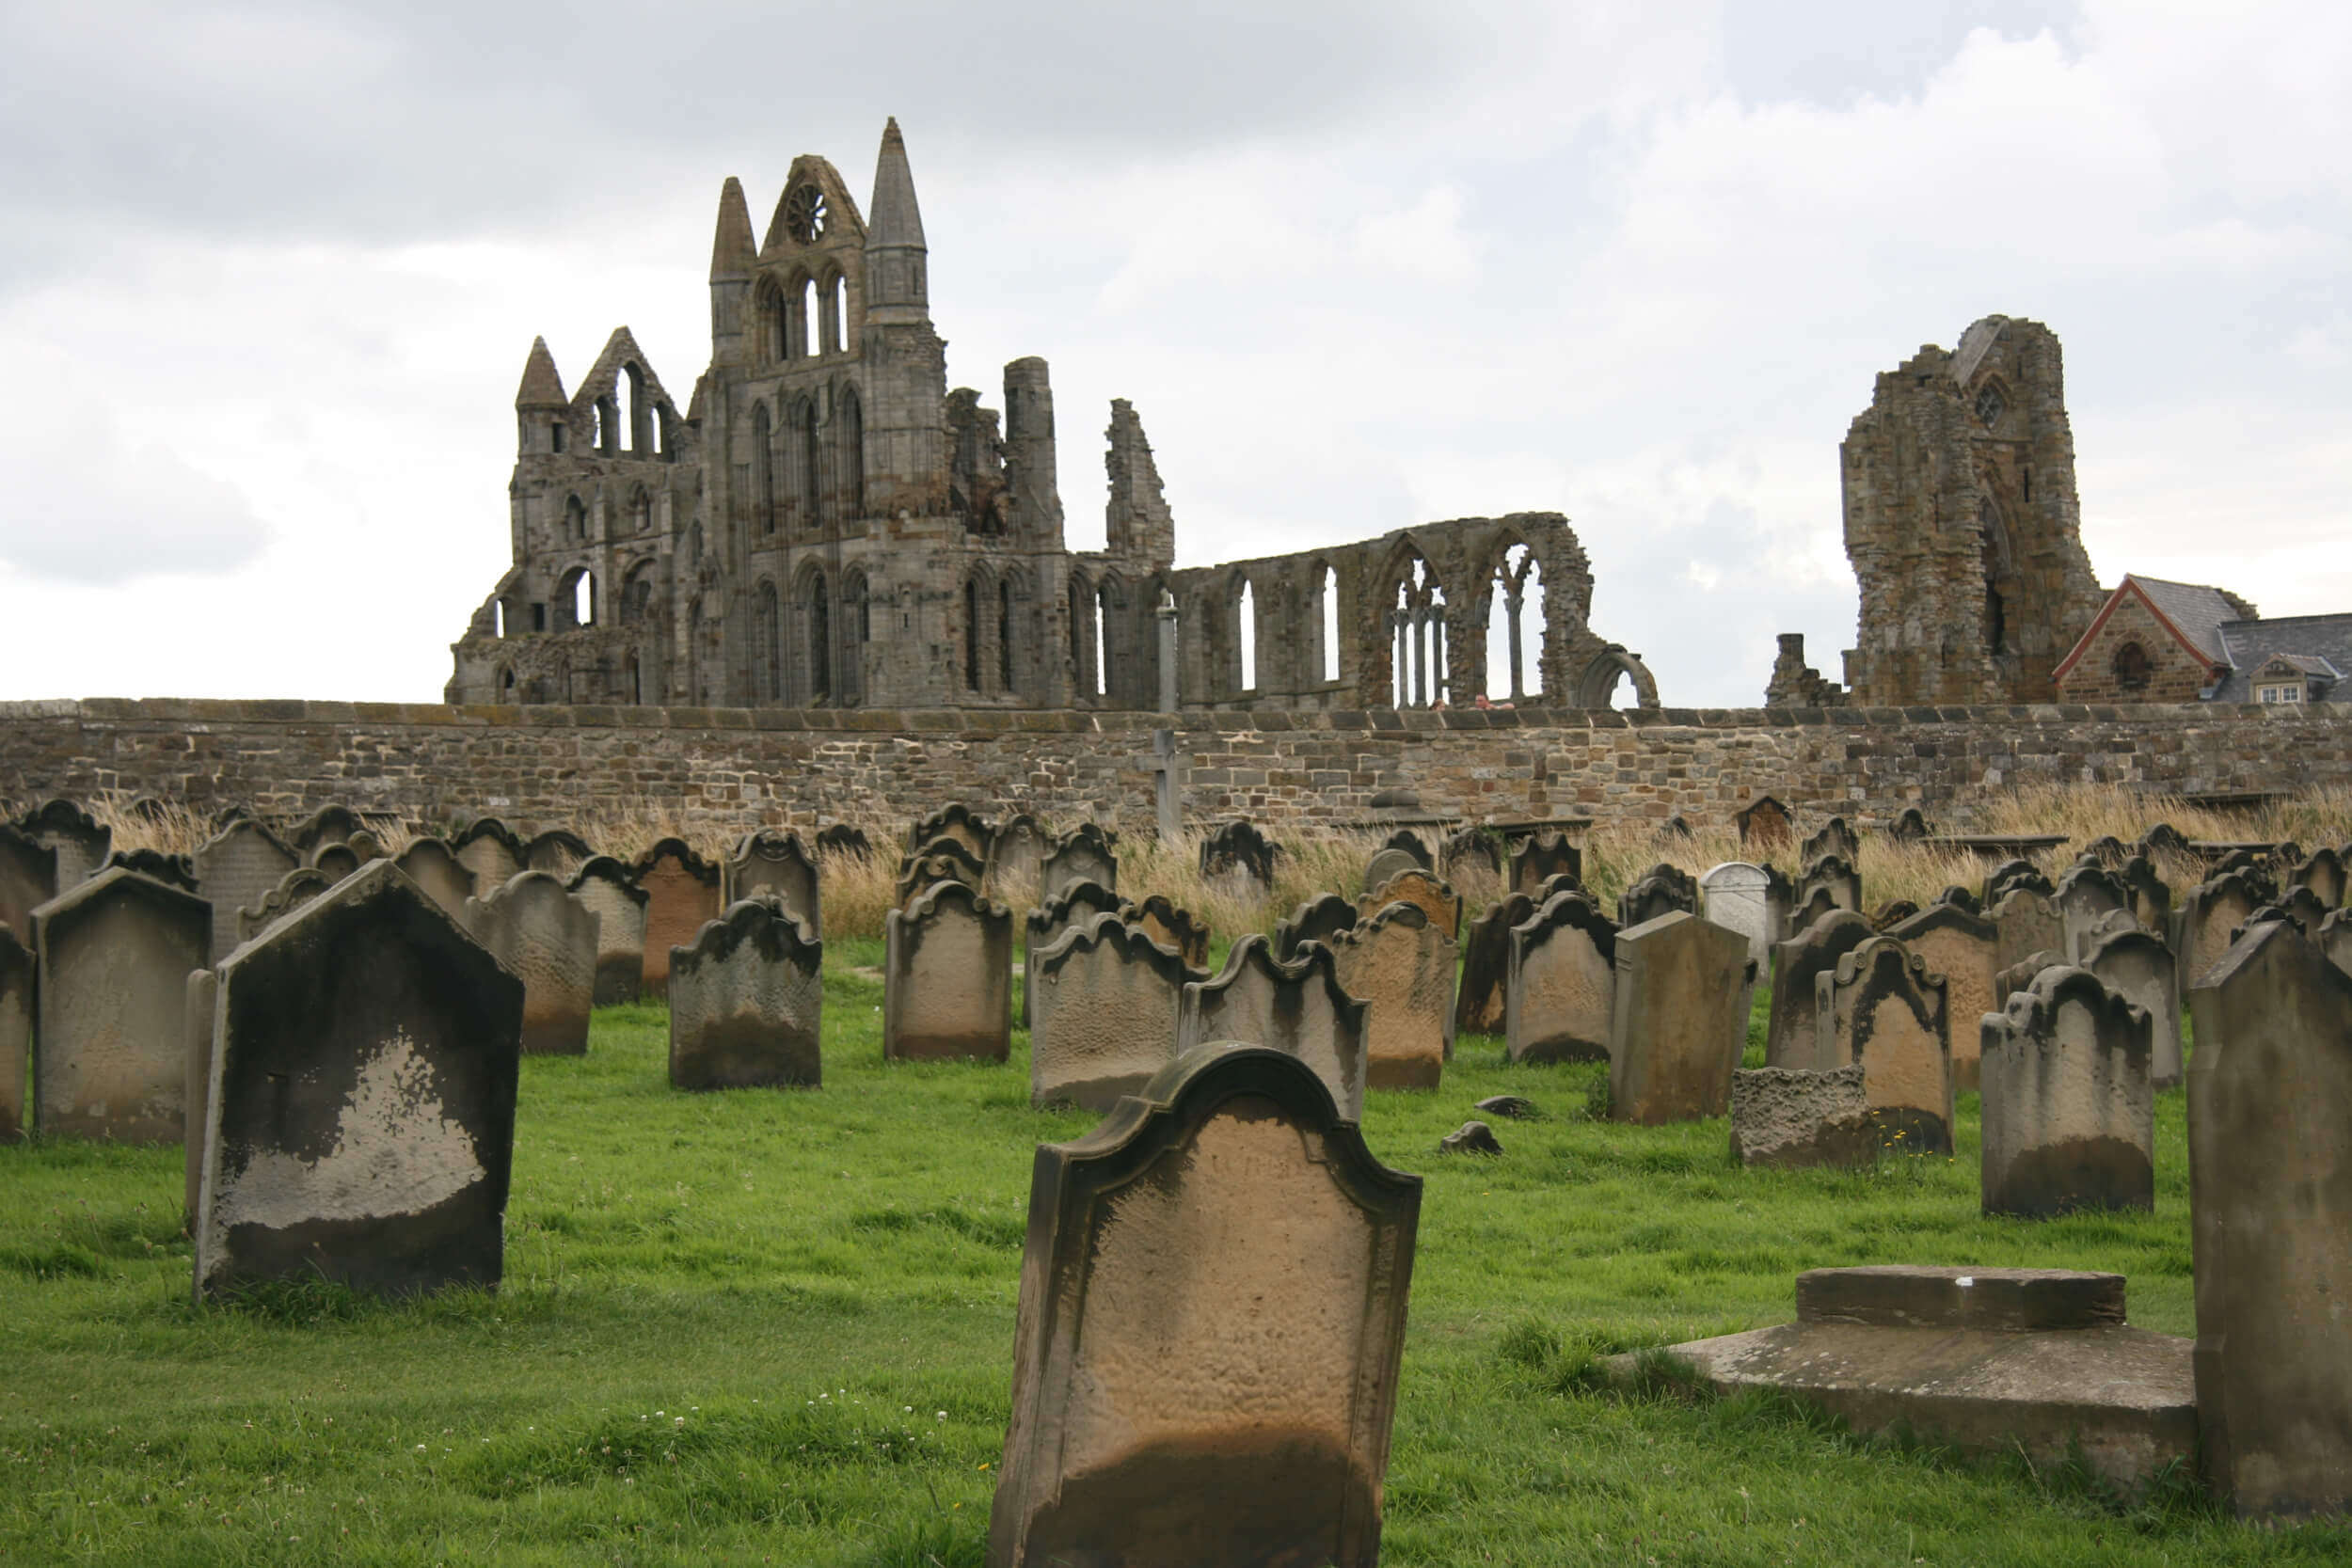 Graveyard at Whitby Abbey, Yorkshire area, England - creditakelamaugli